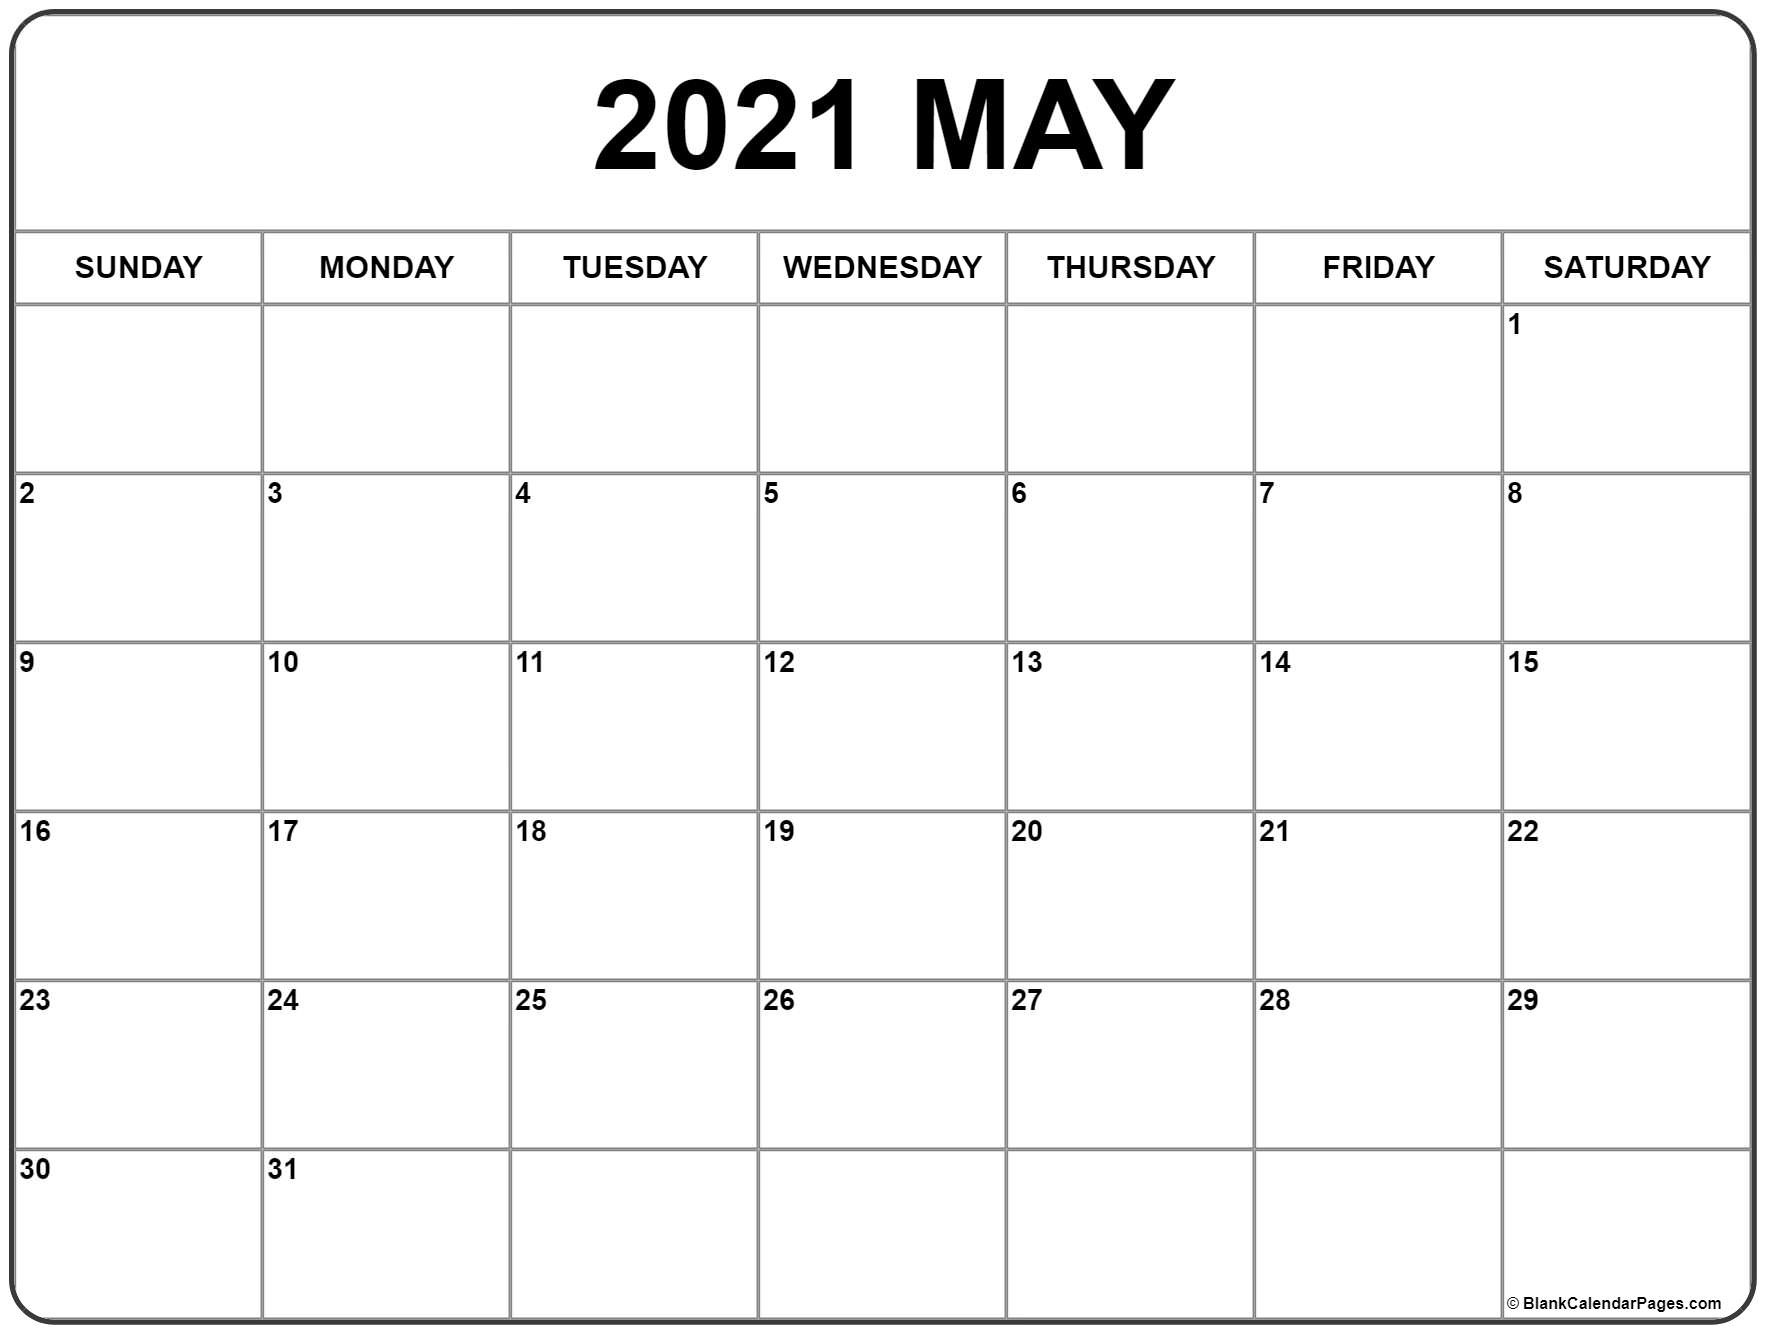 May 2021 Calendar | Free Printable Monthly Calendars  Calendar 2021 Free Printable